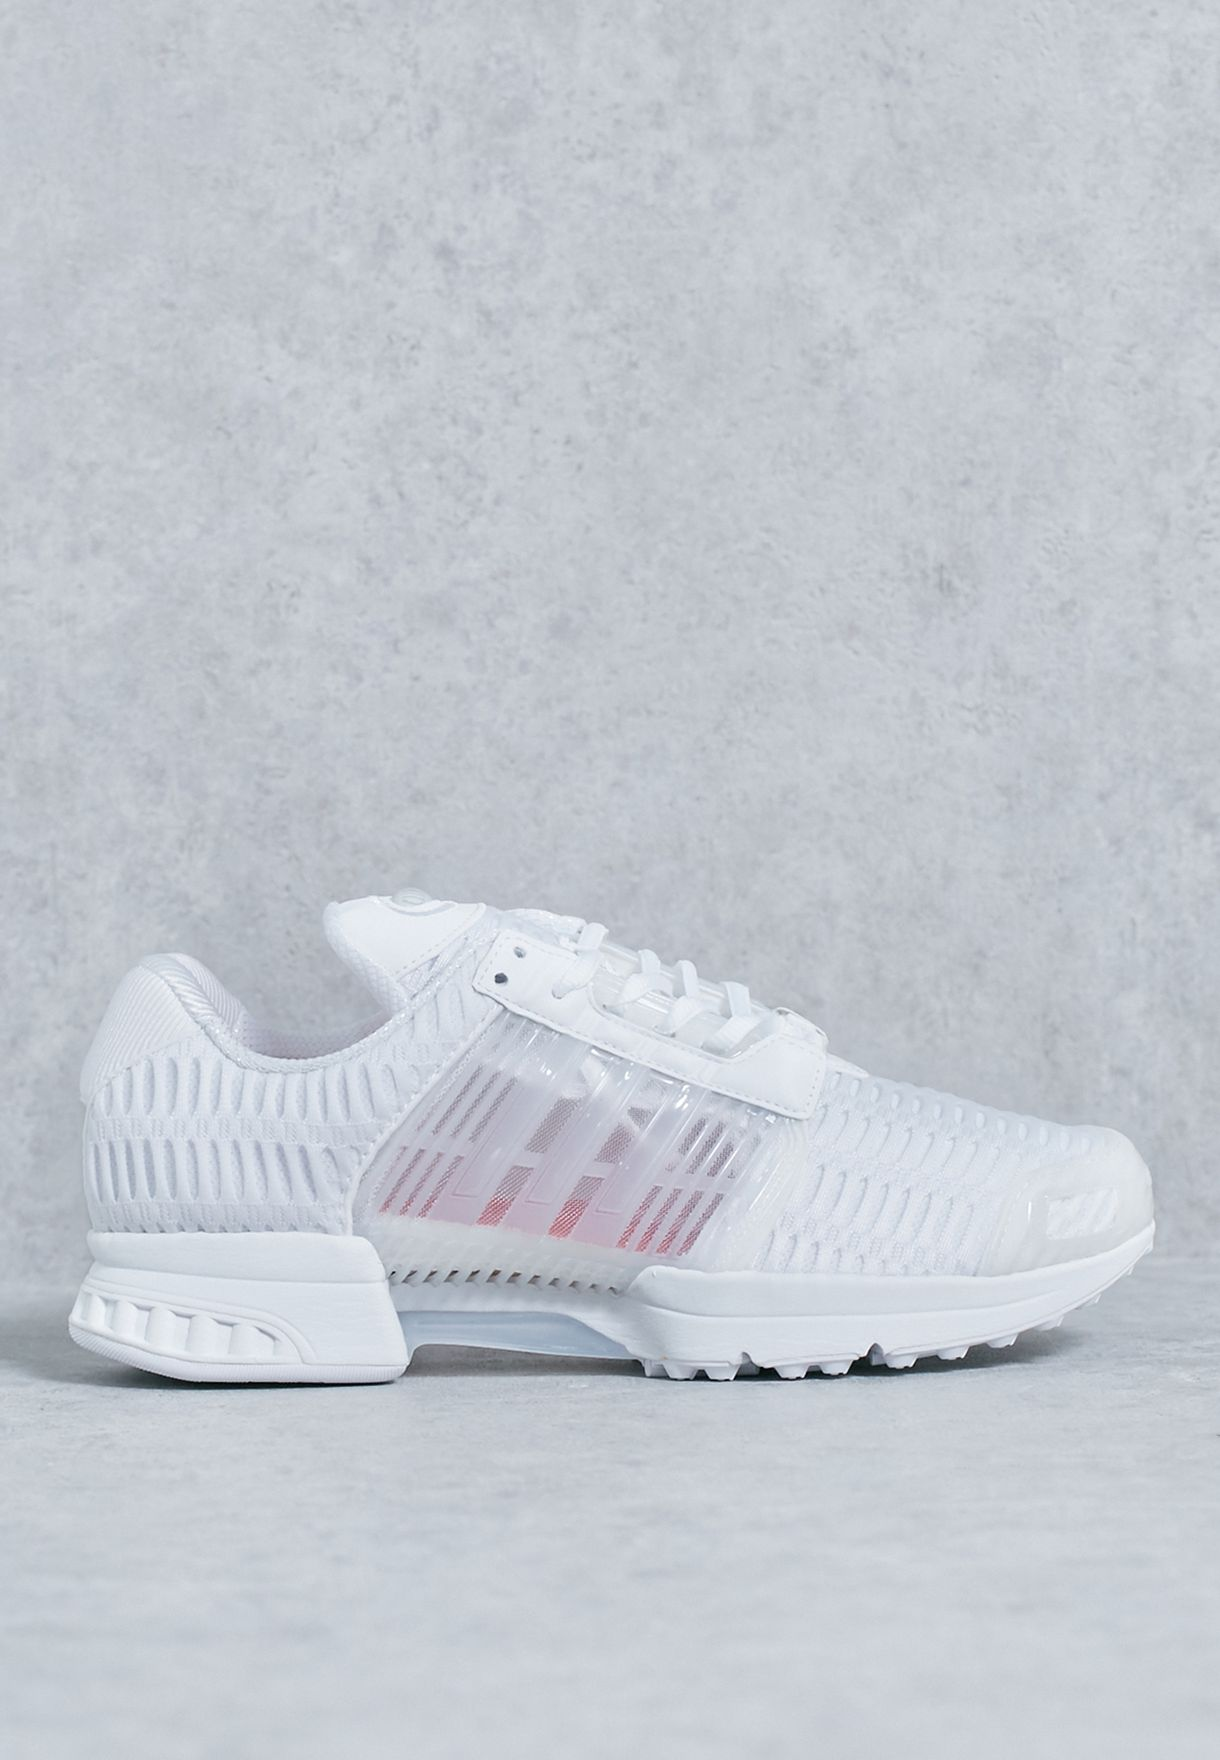 low priced cad19 a2c94 Shop adidas Originals white Climacool 1 S75927 for Men in UA